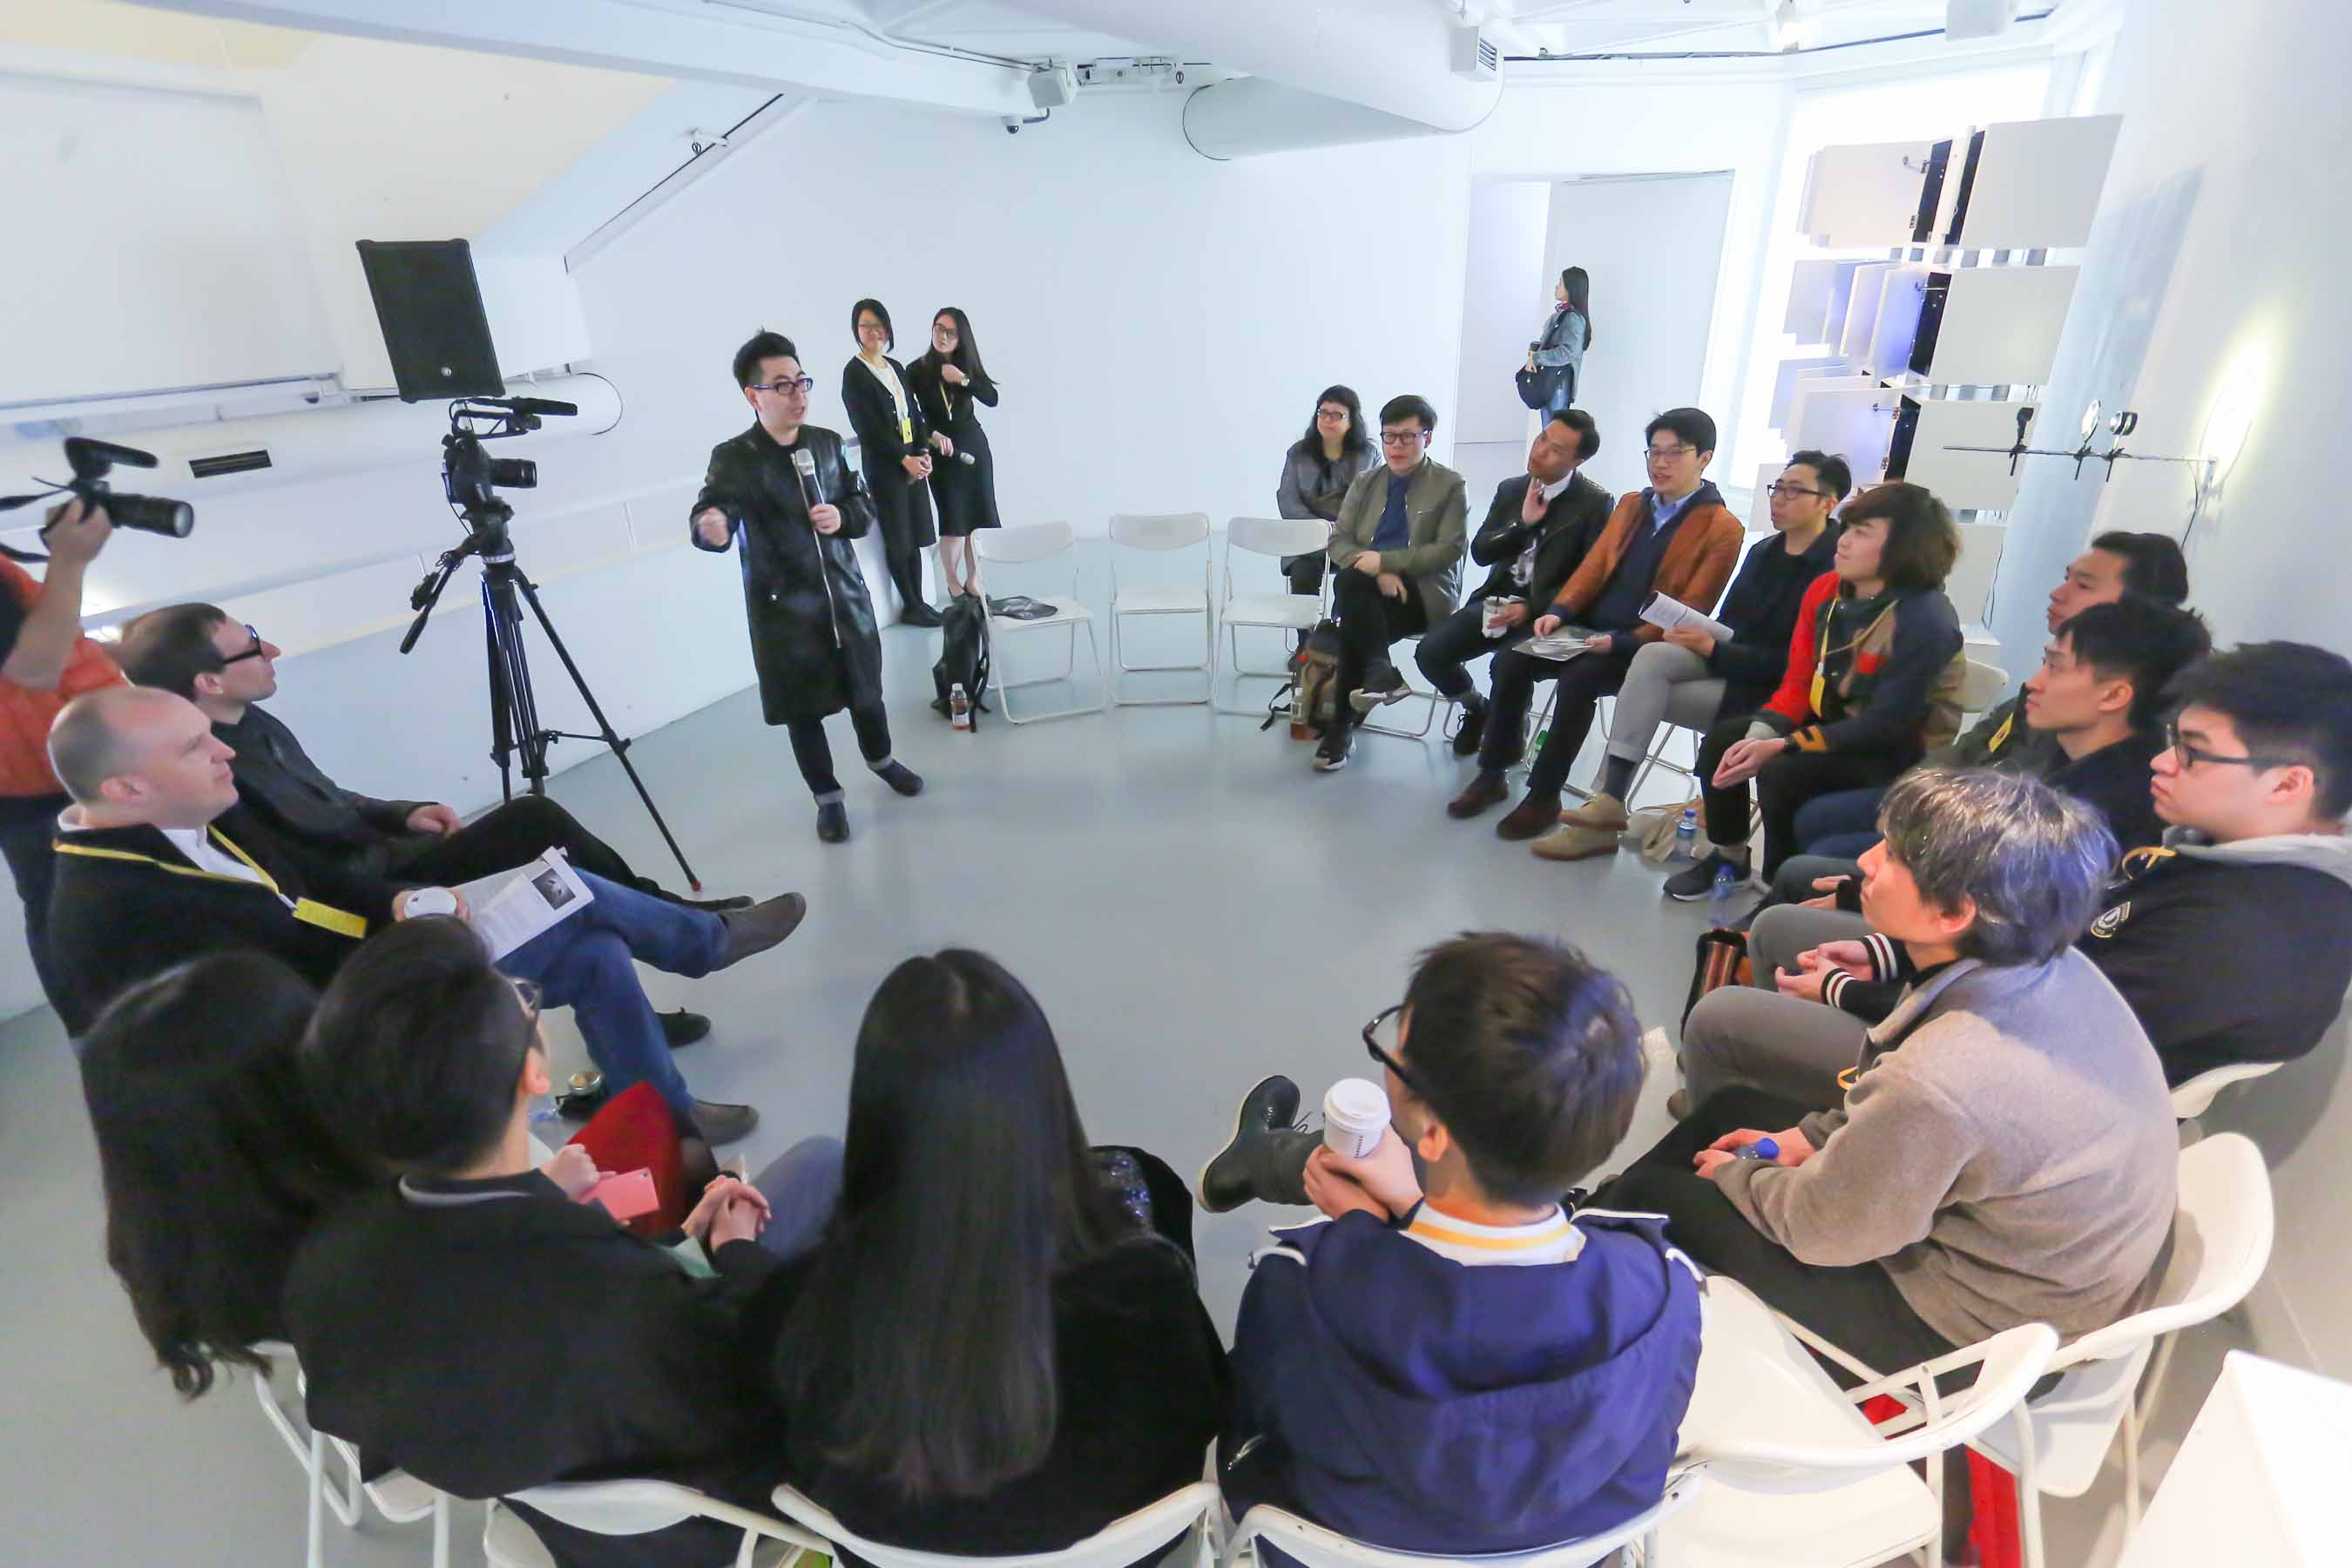 Ip Yuk-yiu, the host of the discussion, started the session with a special rule. Each artist had to select one of the featured artworks for their personal comments and critics.